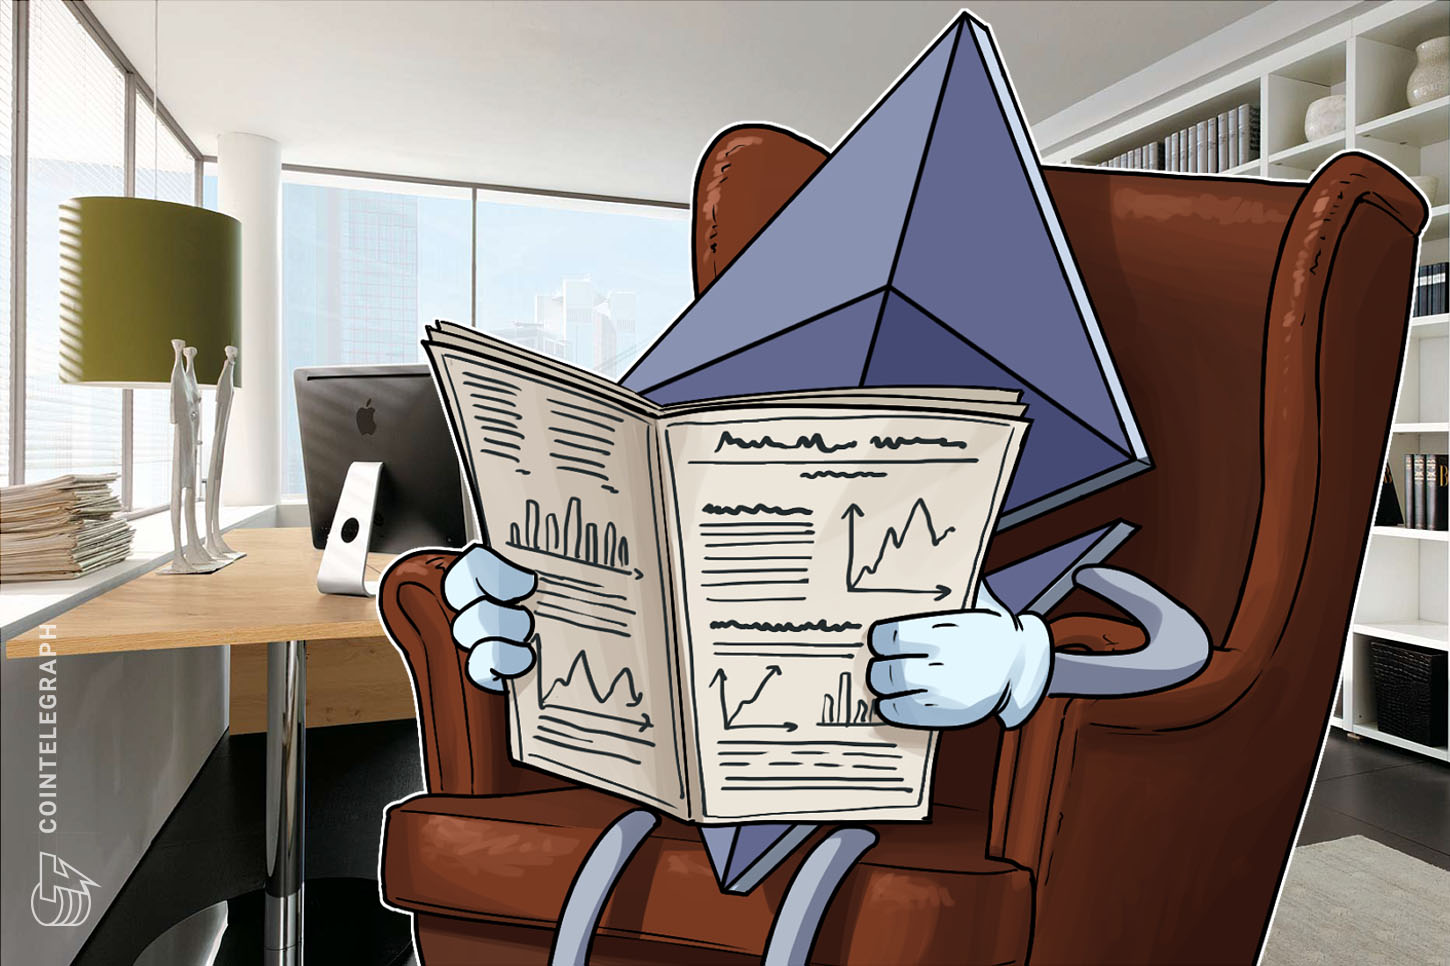 Sam Bankman-Fried believes even ETH 2 can't handle DeFi's potential growth